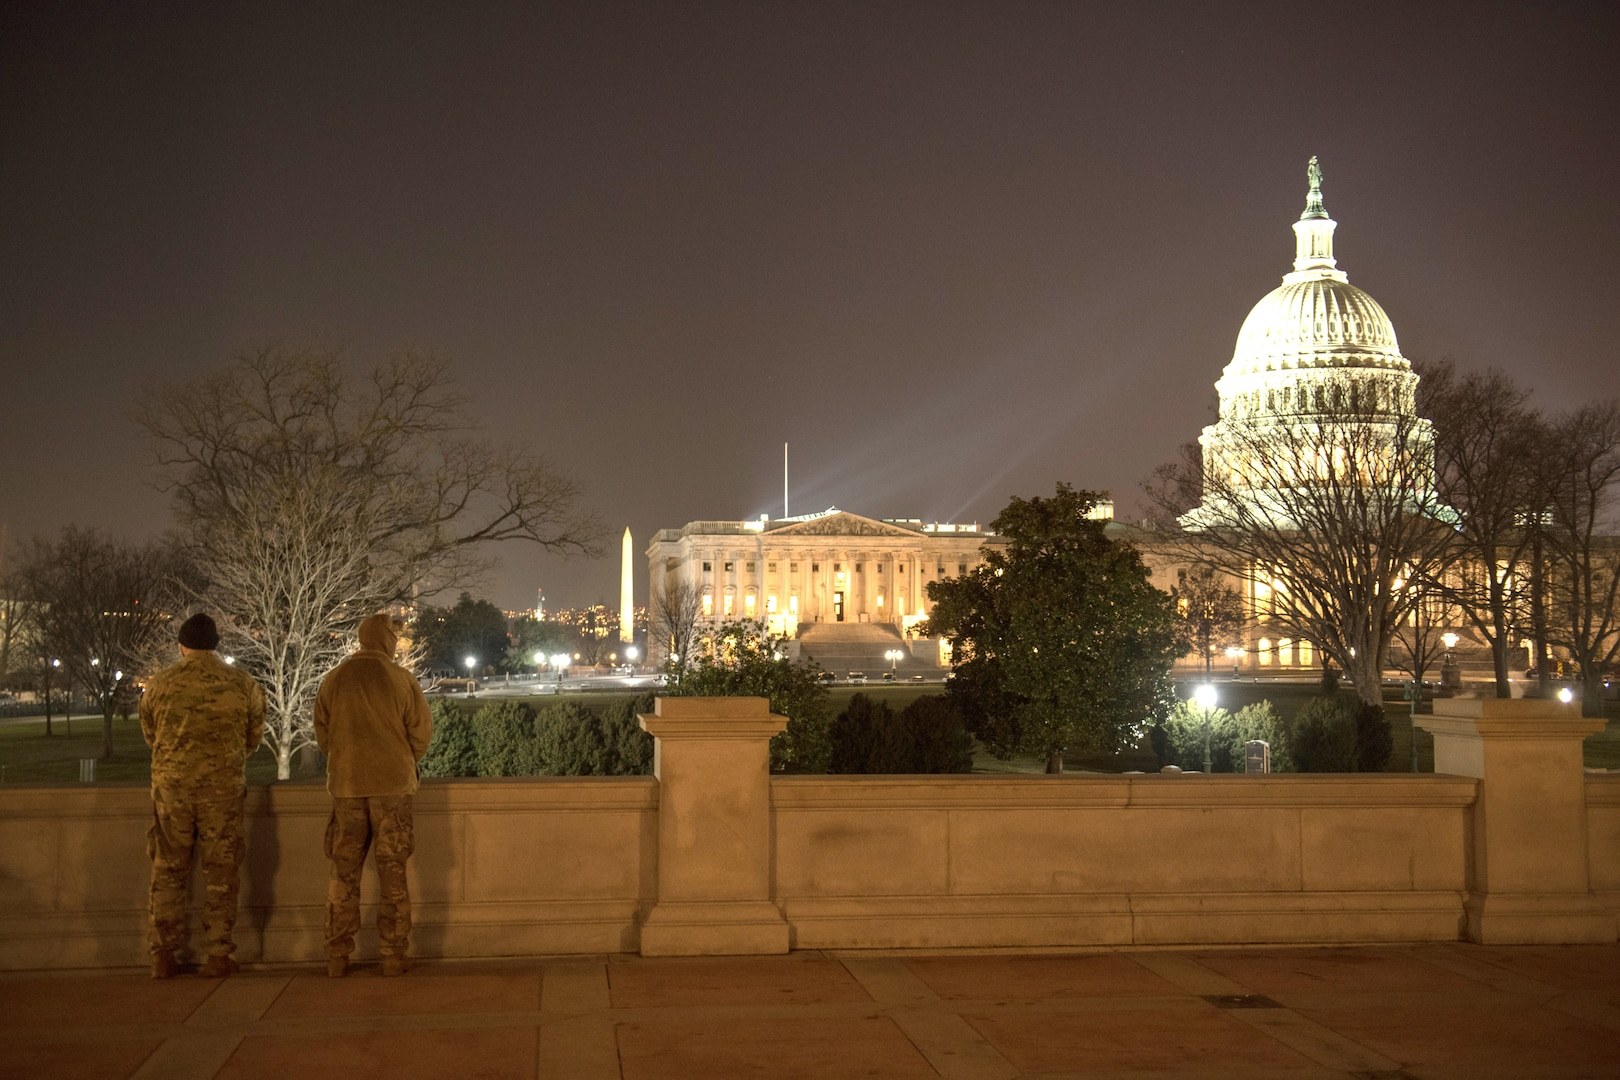 Two soldiers stand guard at night with the Capitol building lit up in the background.